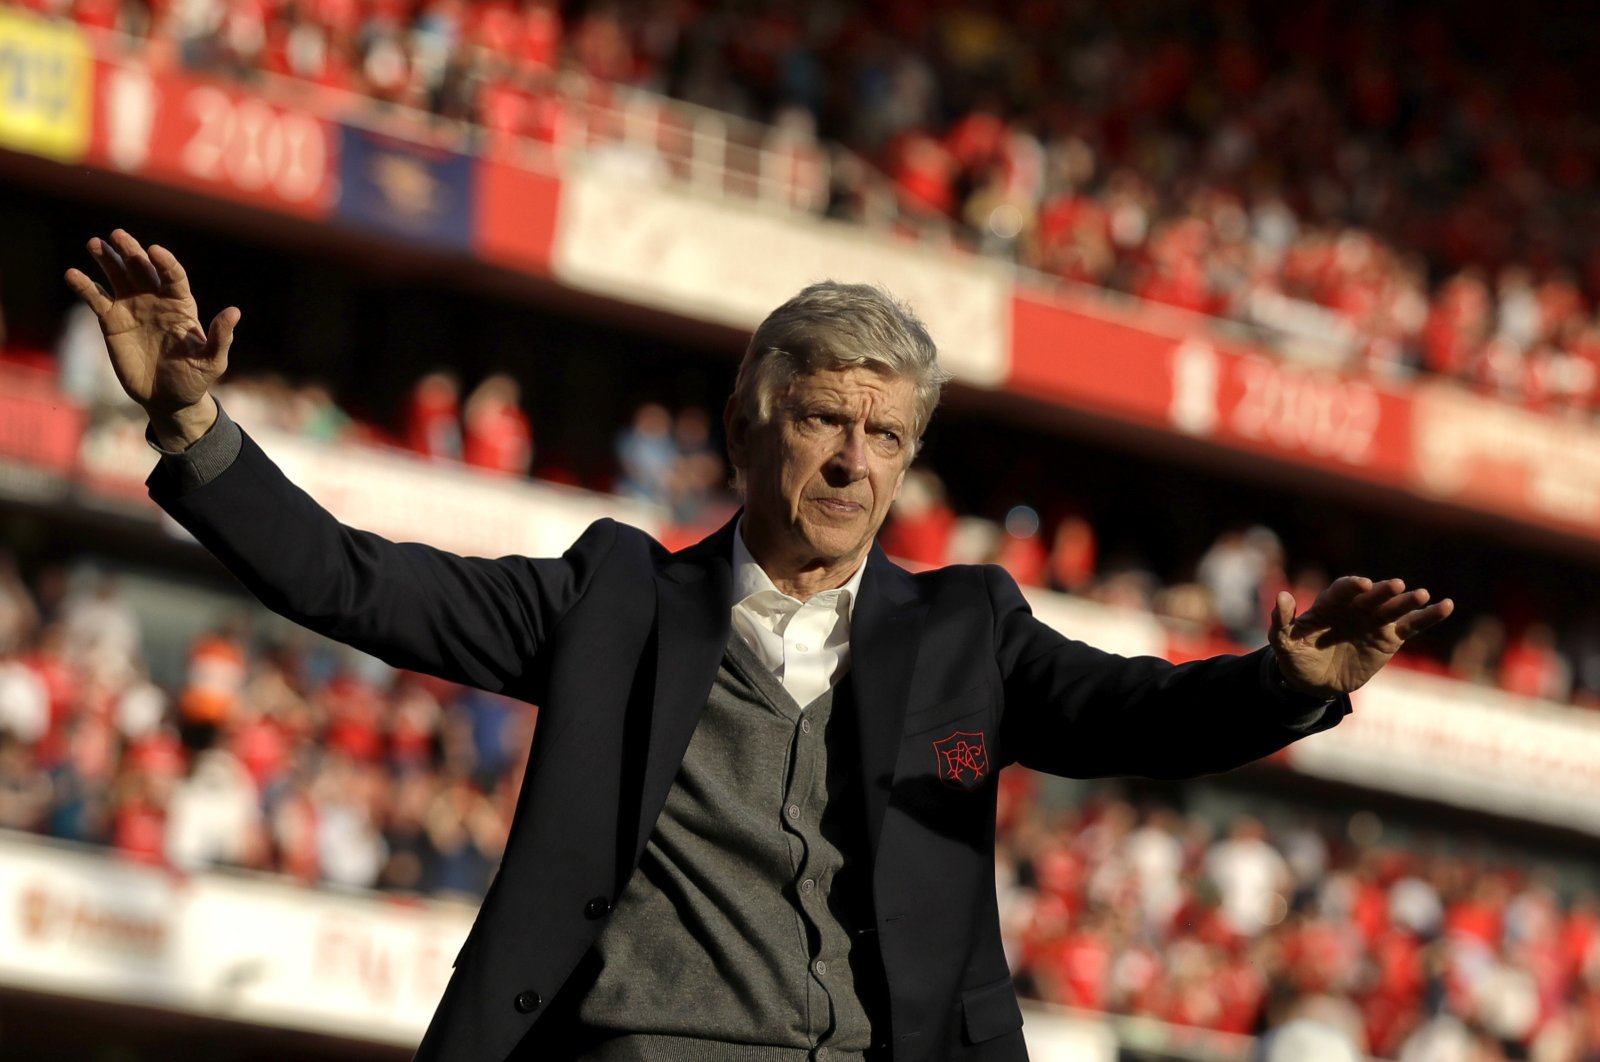 Former Arsenal manager Arsene Wenger waves after his last match with the club, London, Britain, May 6, 2018. (AP Photo)